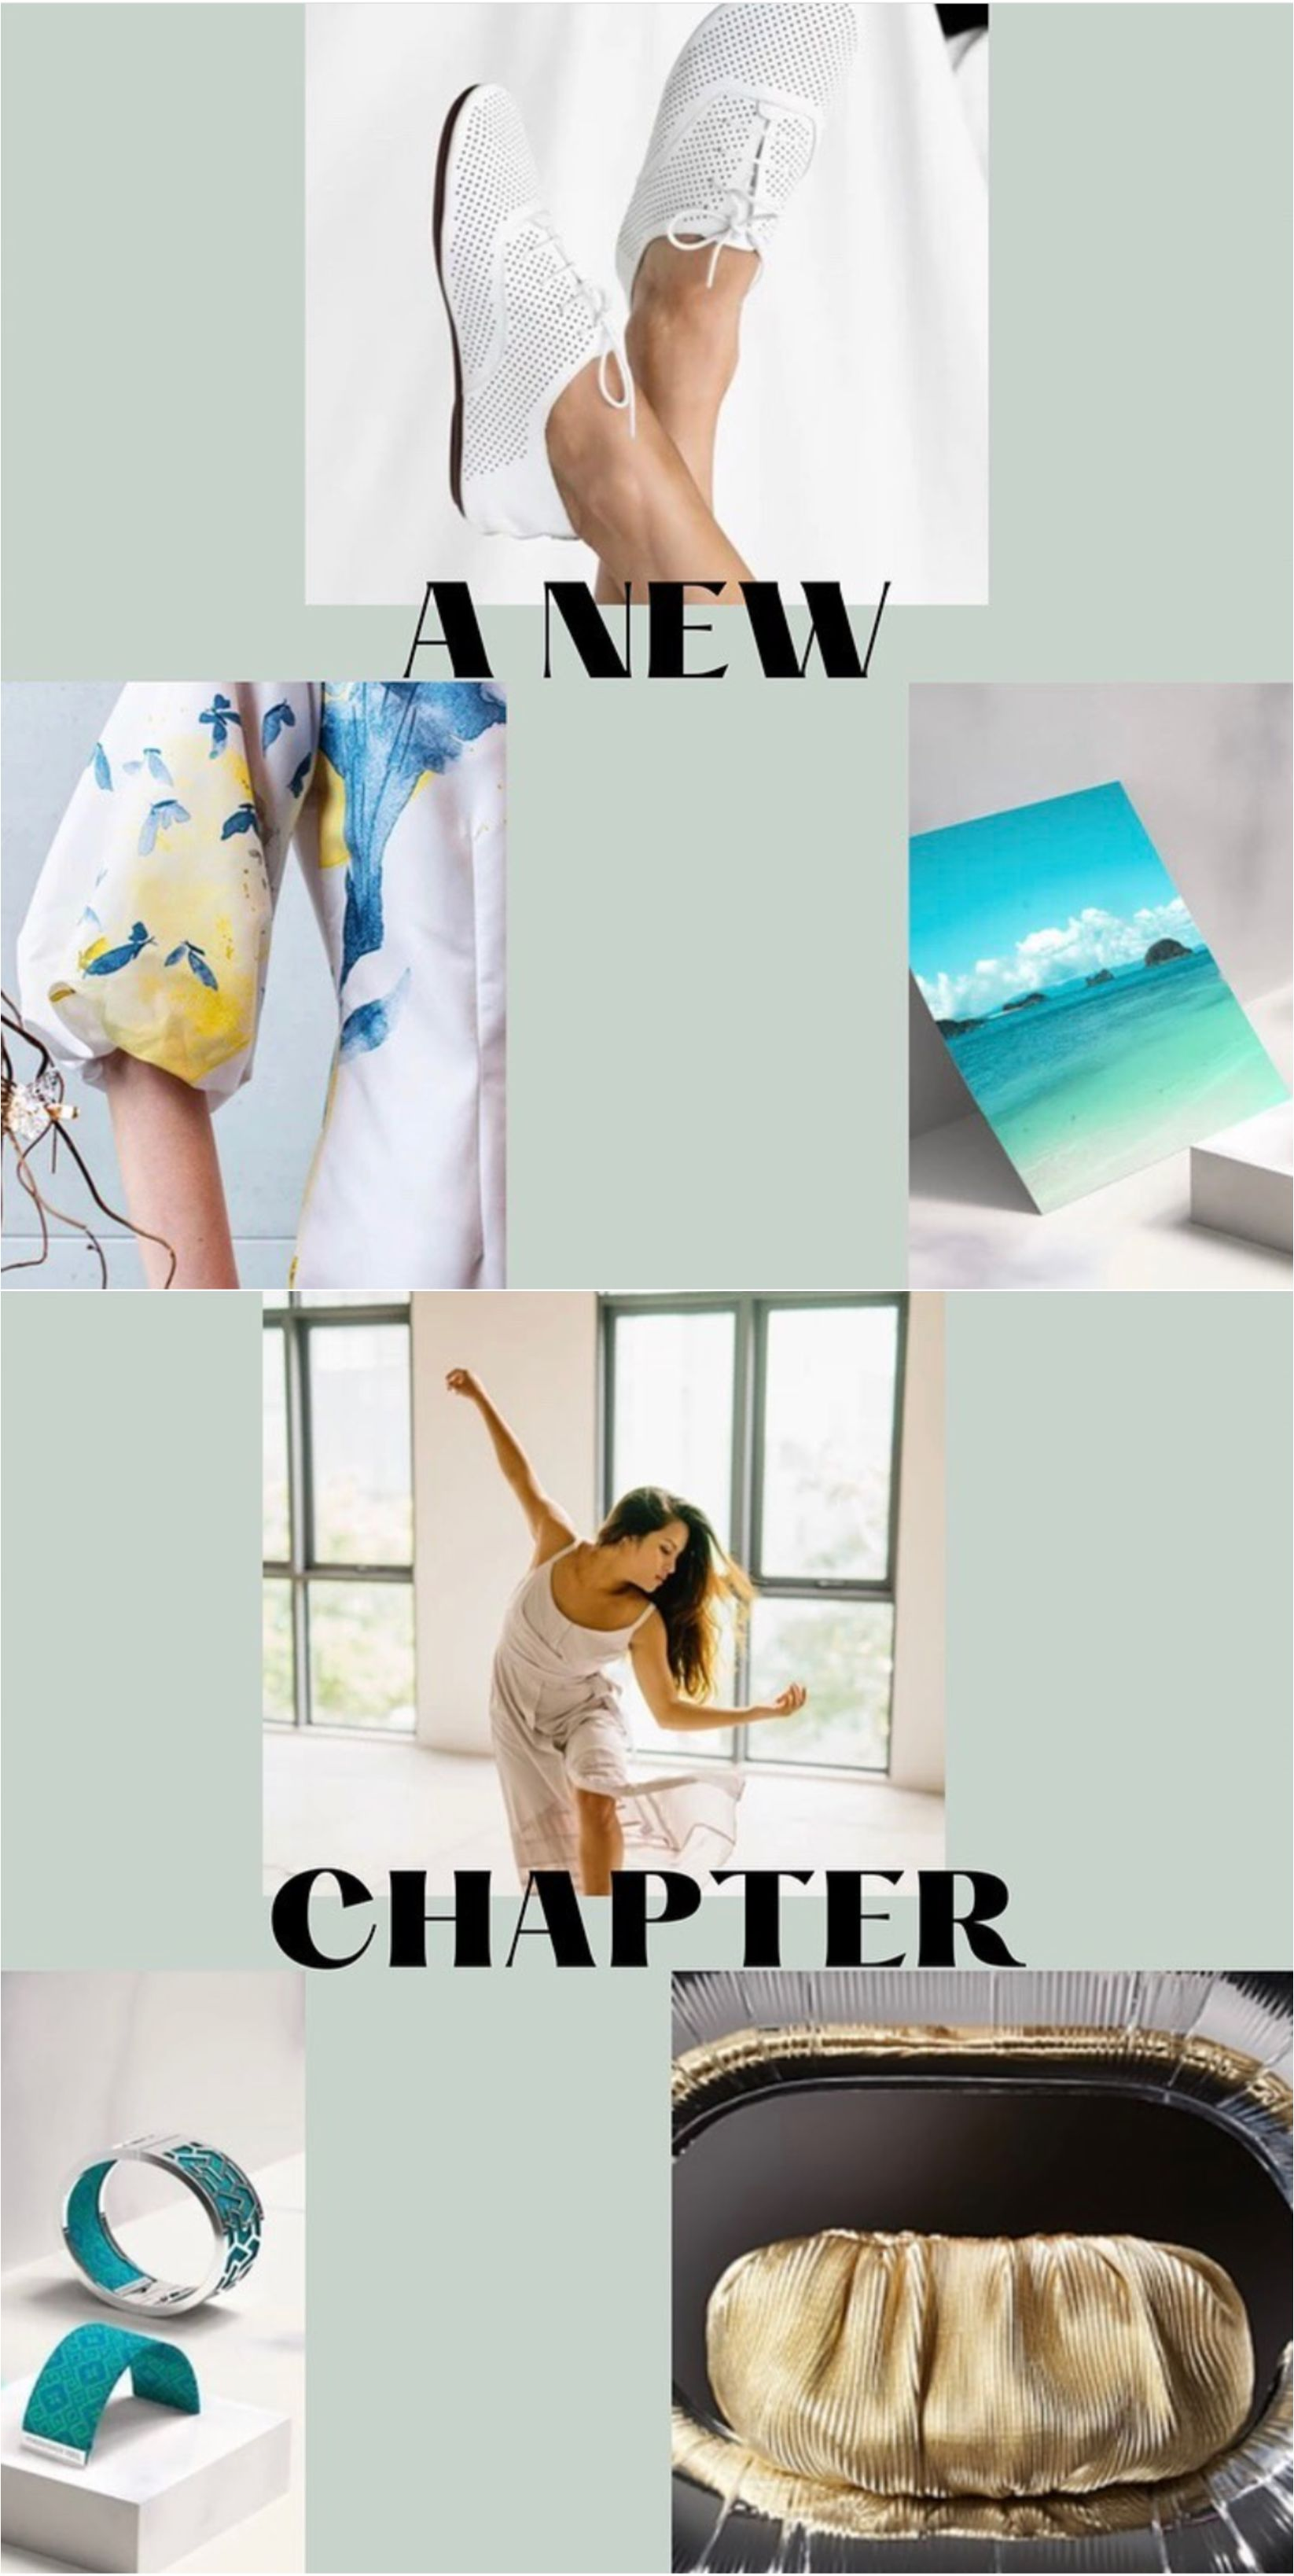 TaFF's New Chapter